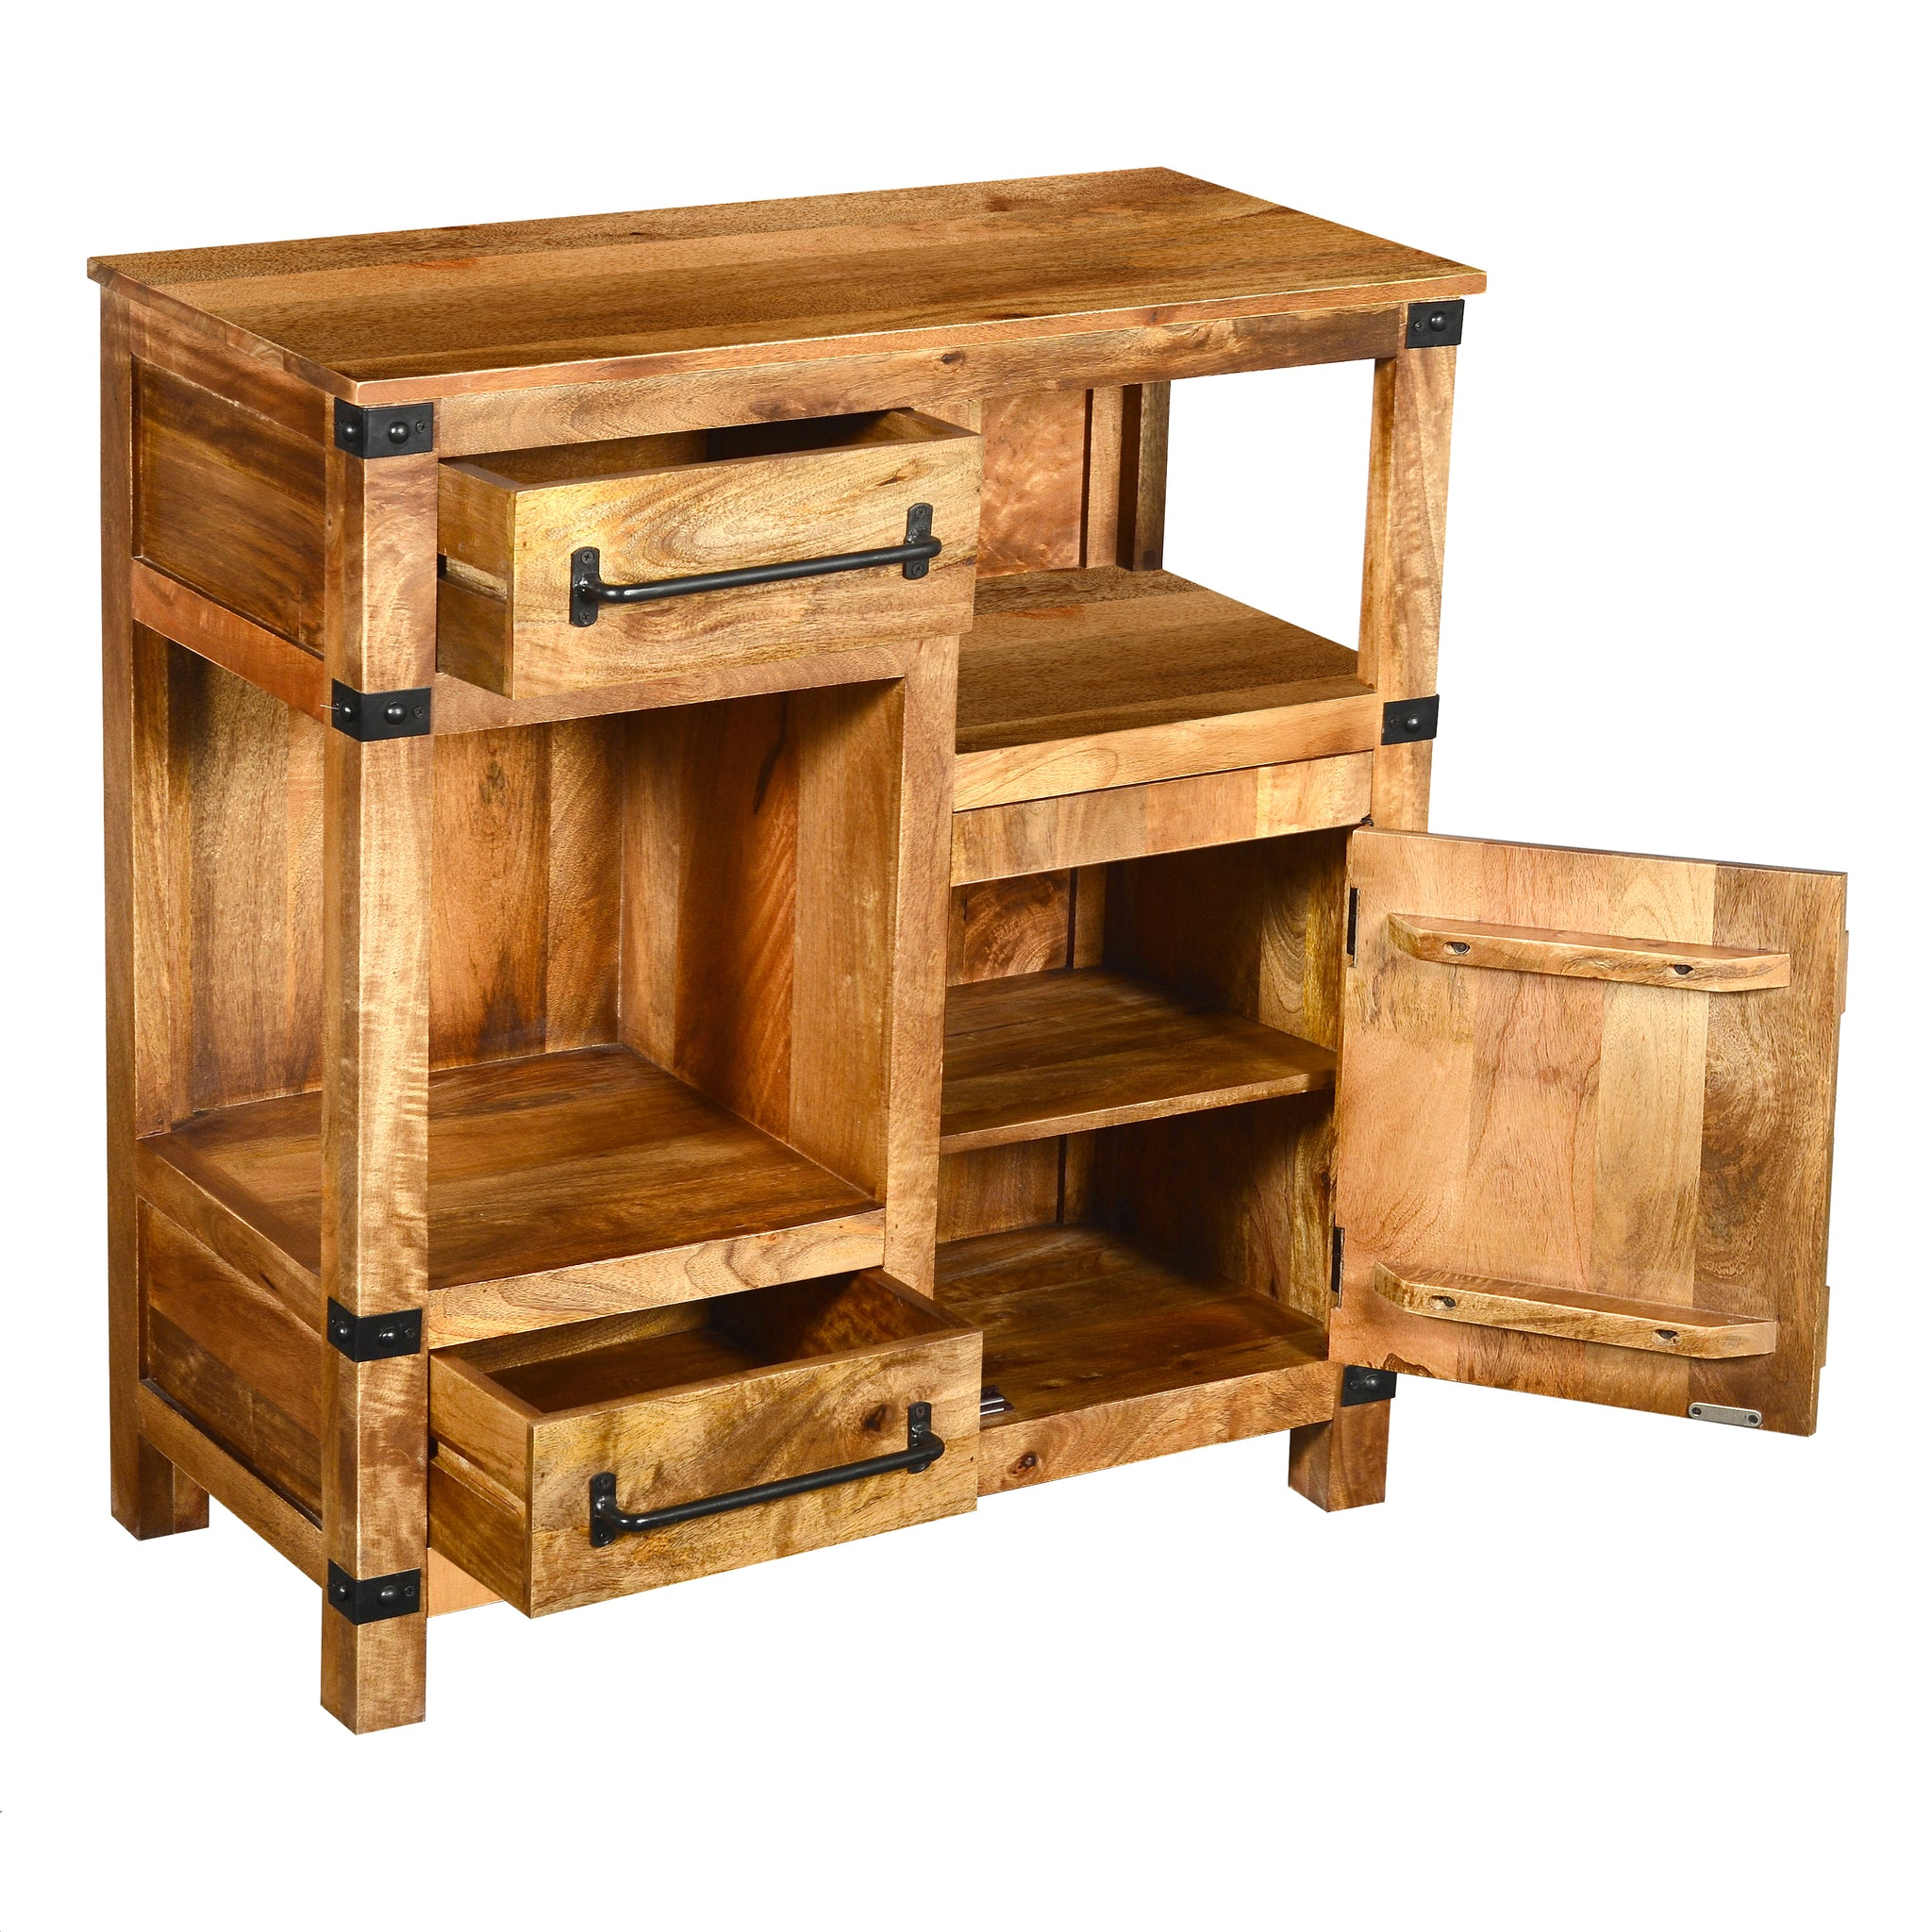 Urban Port UPT-195278 Wooden Cabinet with Drawers and Shelves